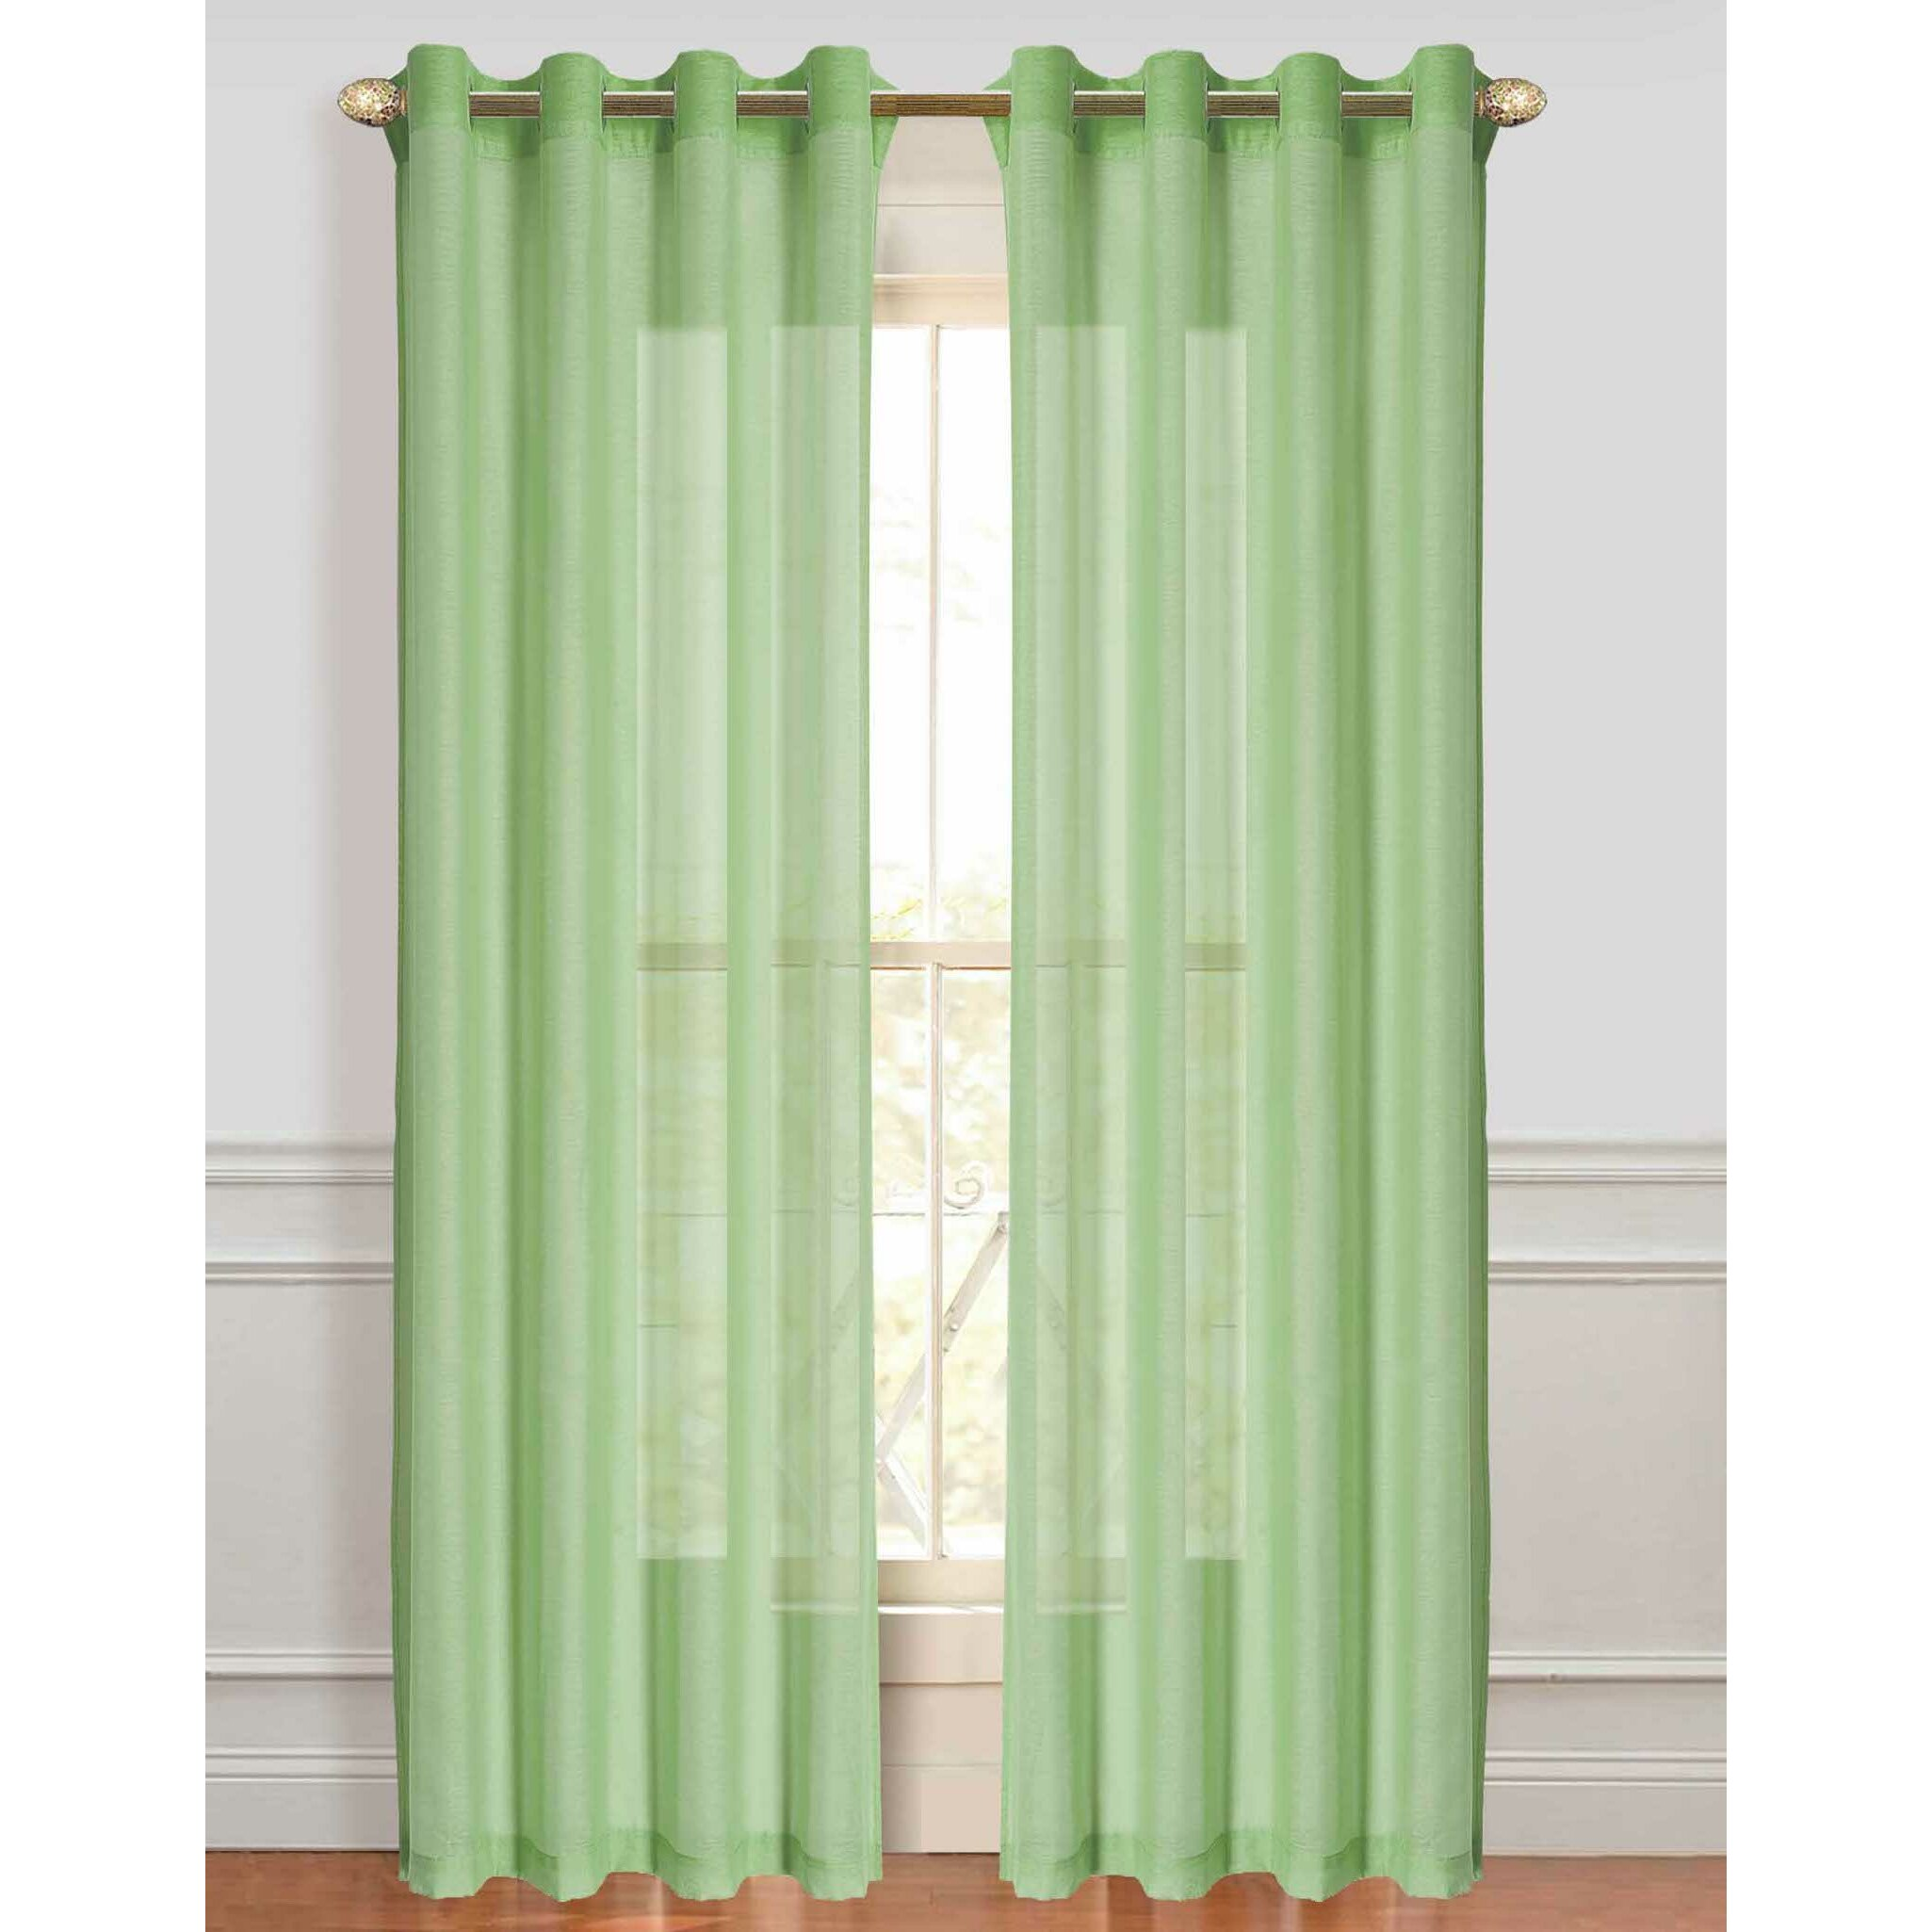 Belk Kitchen Curtains: Dainty Home Malibu Sheer Curtain Panels & Reviews